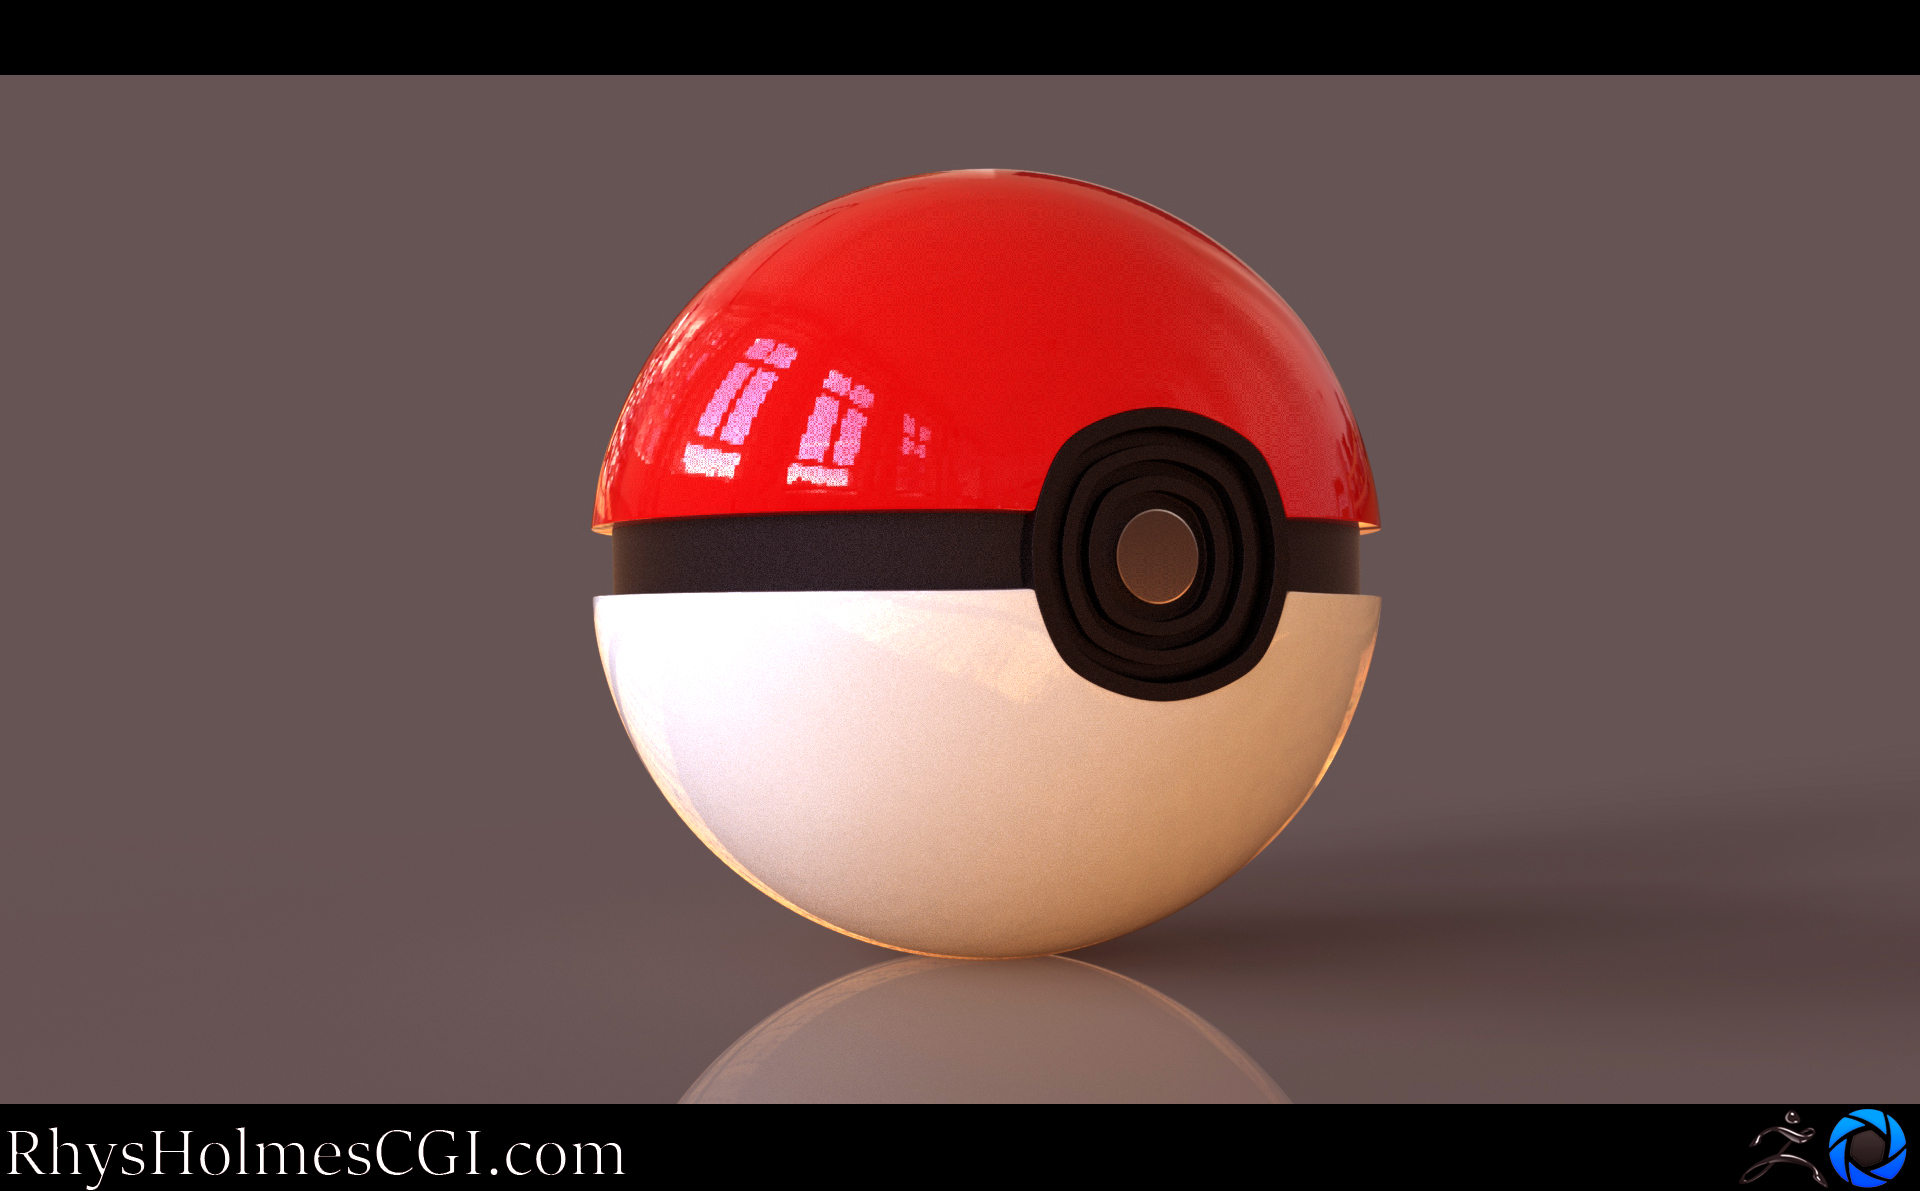 Second Model Of ball_RED_New design template.jpg